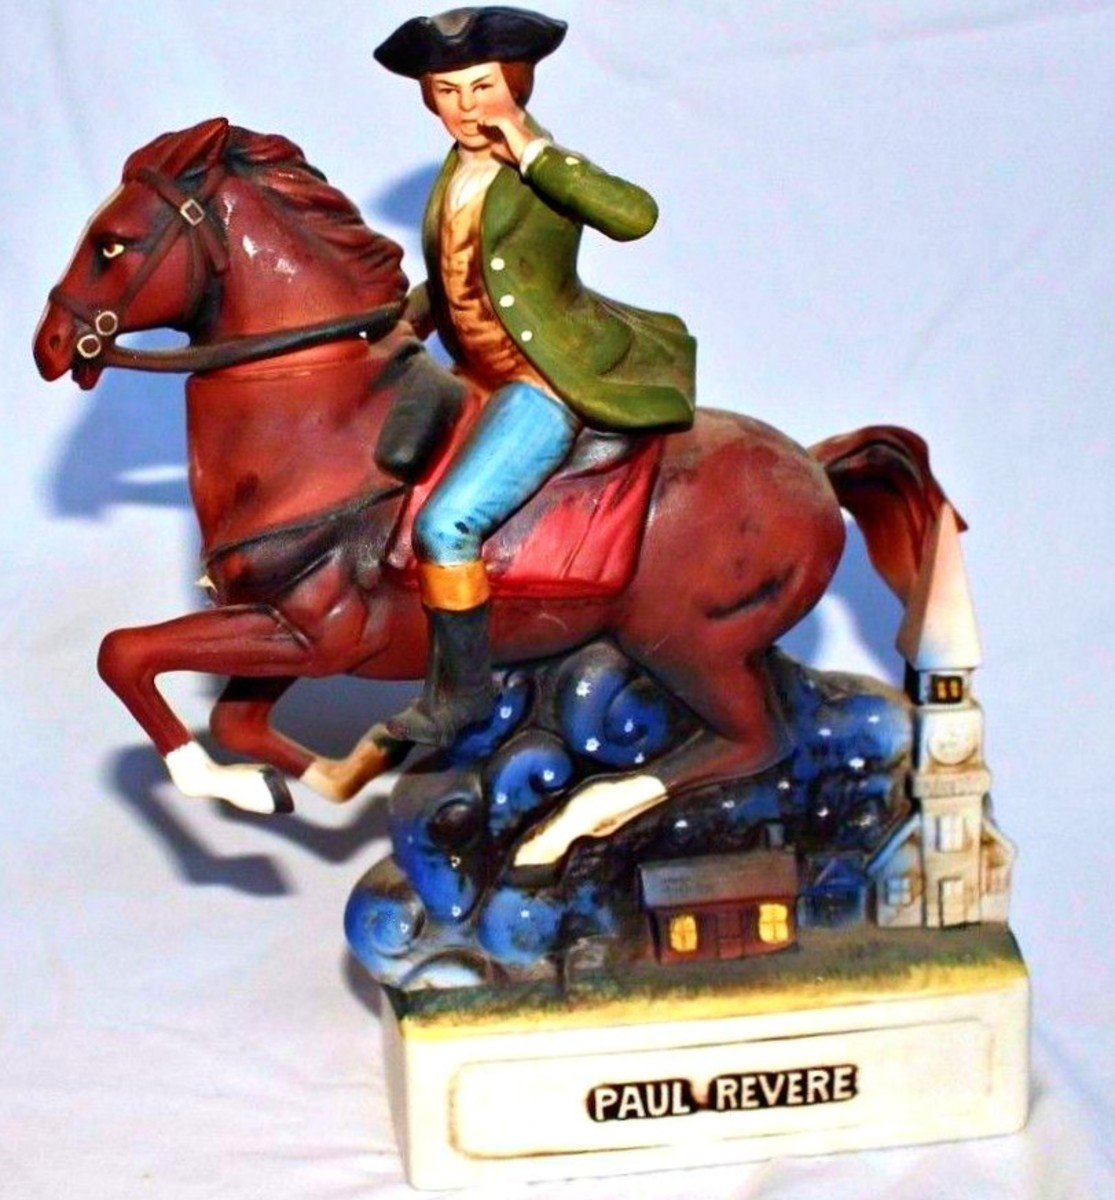 Because Paul Revere was immortalized after his death for very brave and patriotic role as a messenger that the British are coming to the American minutemen in the battles of Lexington and Concord, he has become a simple of the spirit of 1776 …